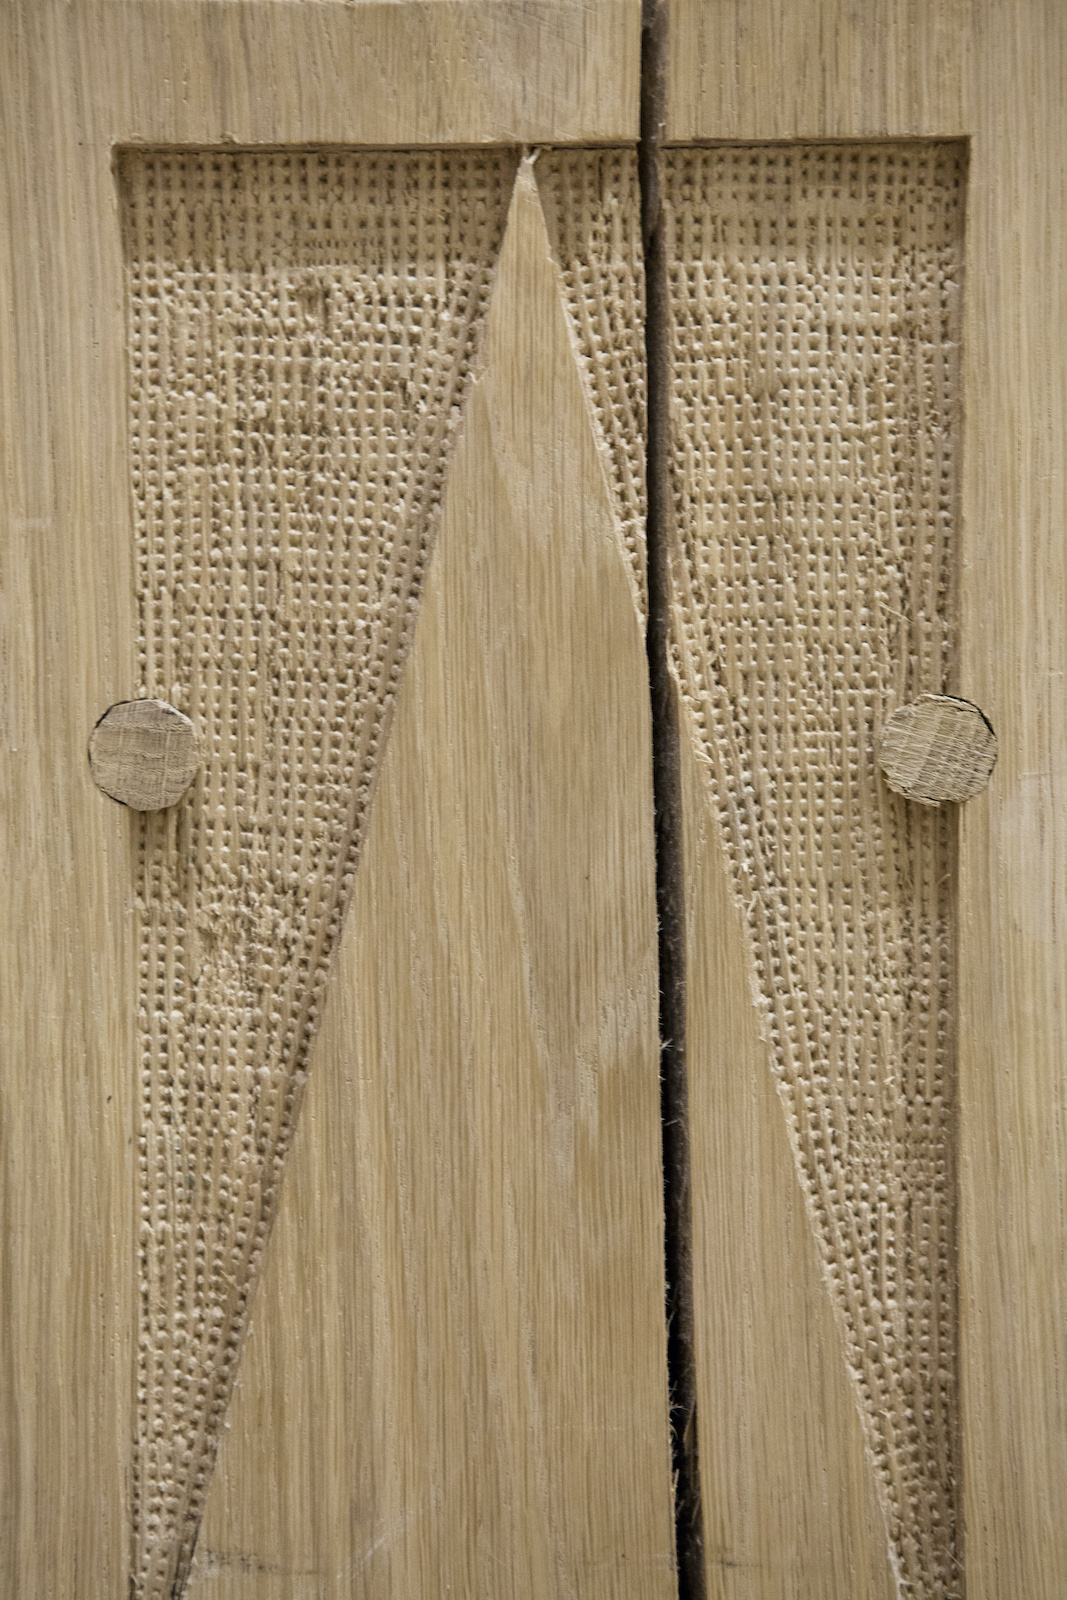 A close up of a wooden material with textured patterns carved into it